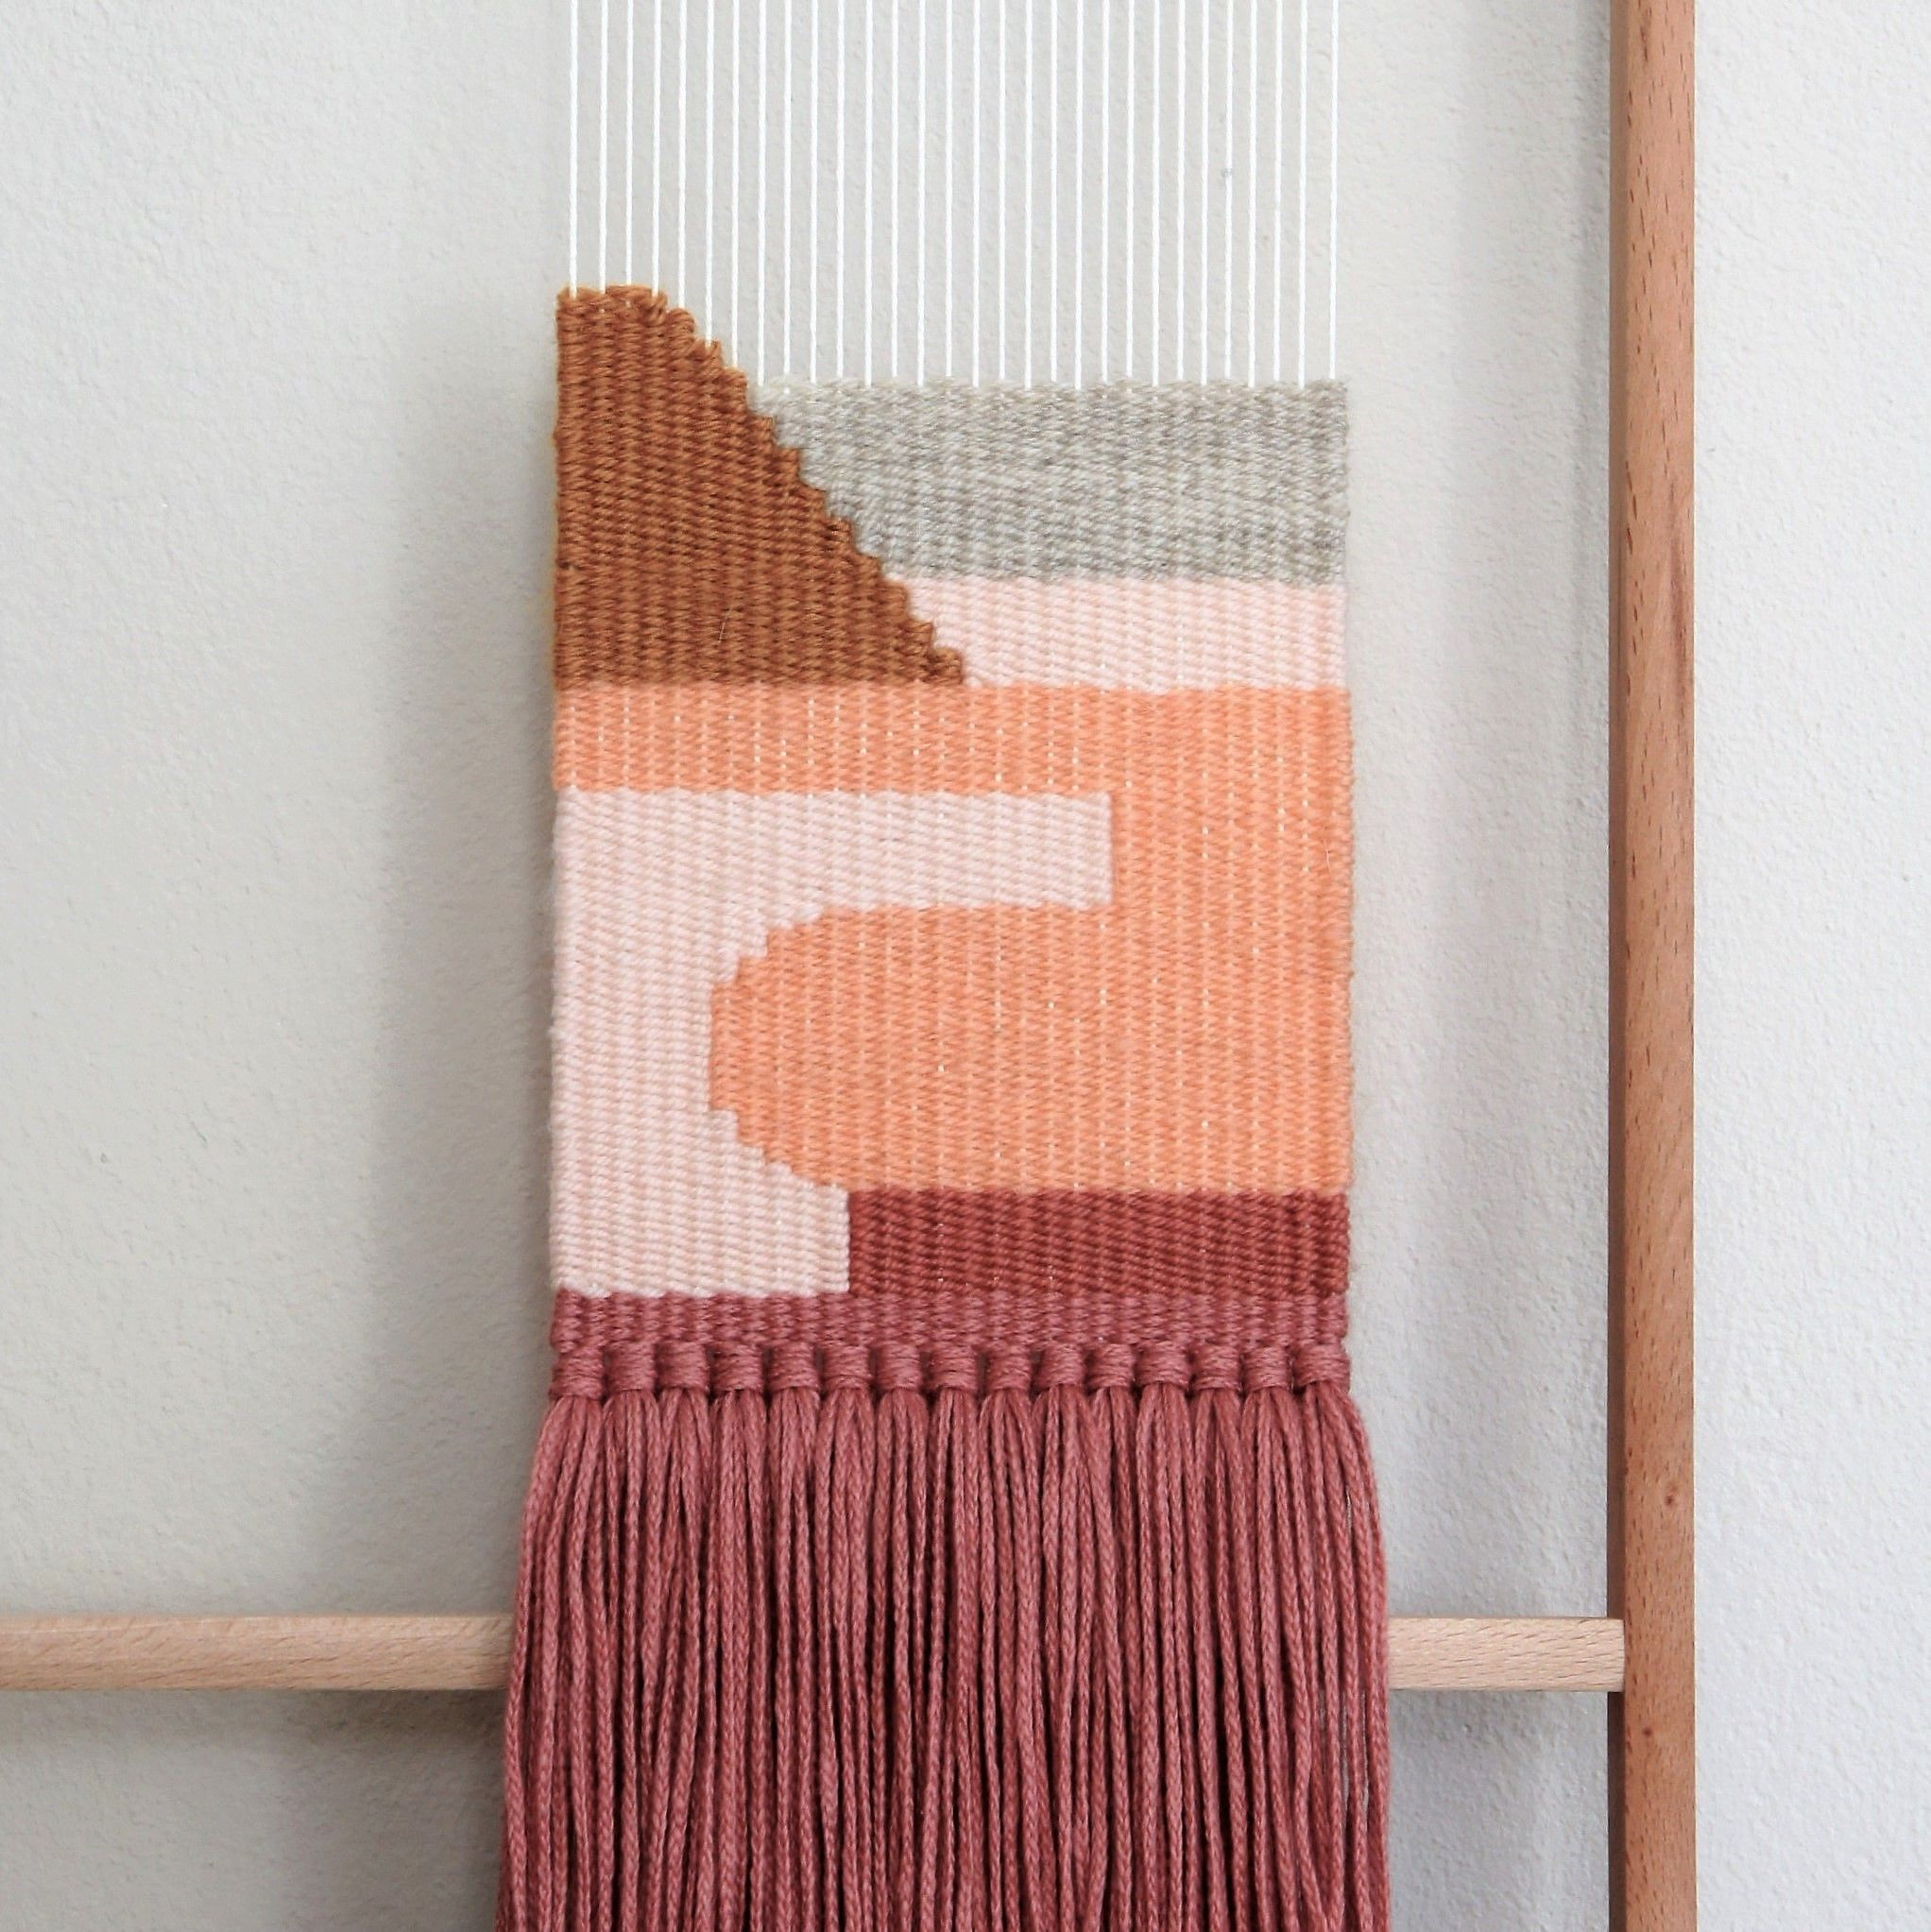 Wandteppich Modern Amy Handwoven Wall Hanging By Wednesdayweaving Amy Handgewebter